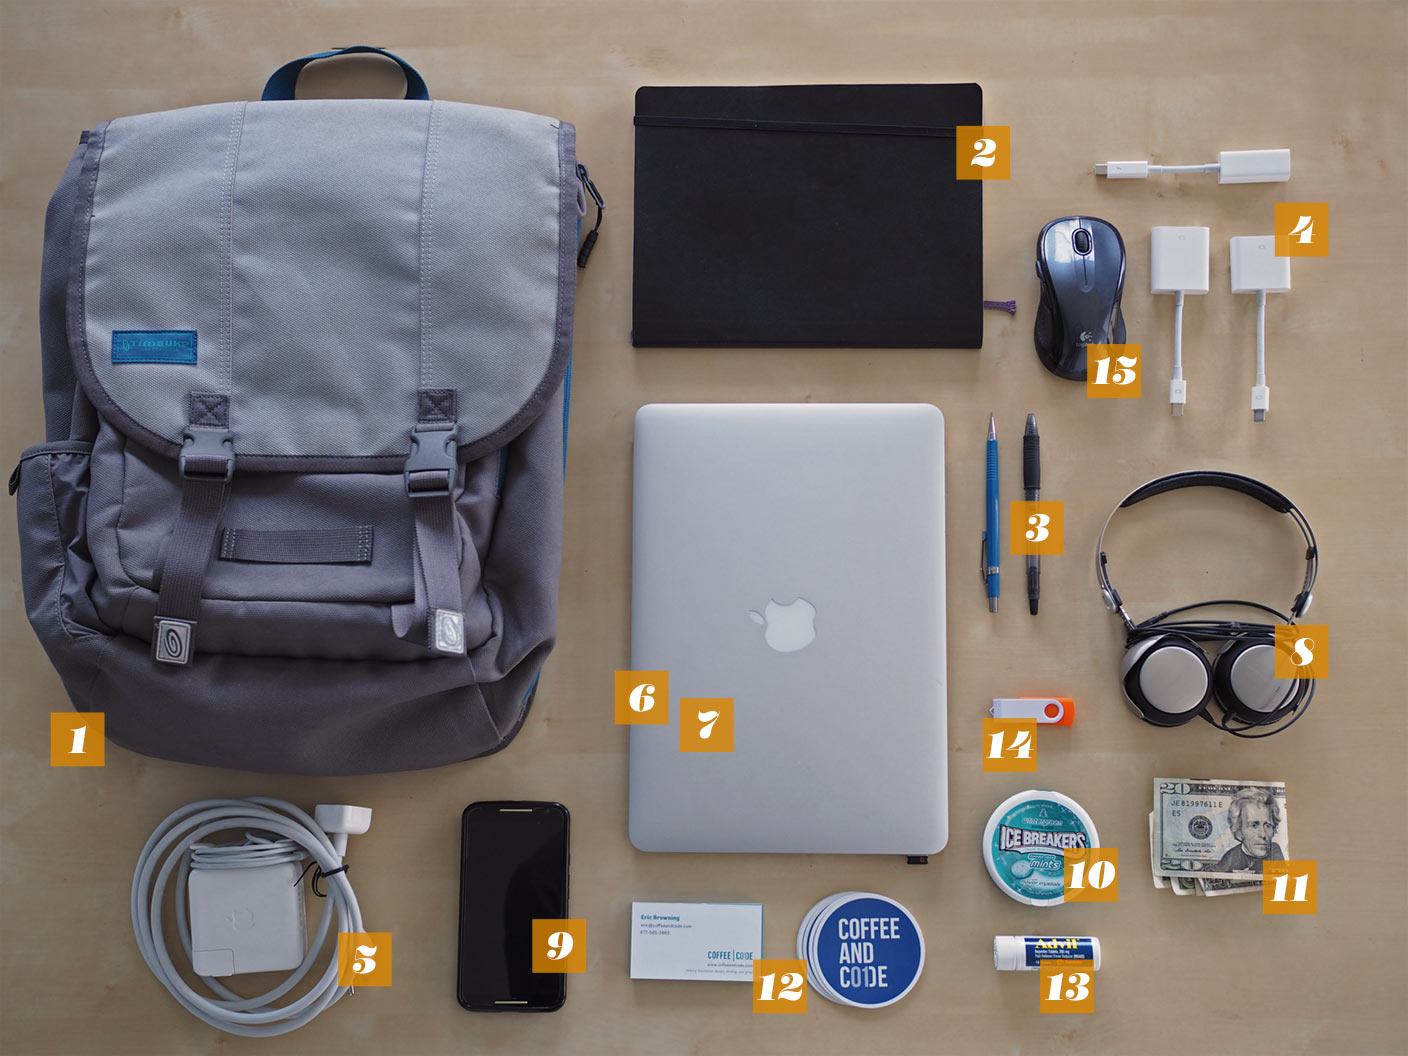 Things you might not think to bring with you, like adapters, cash, mints and swag.